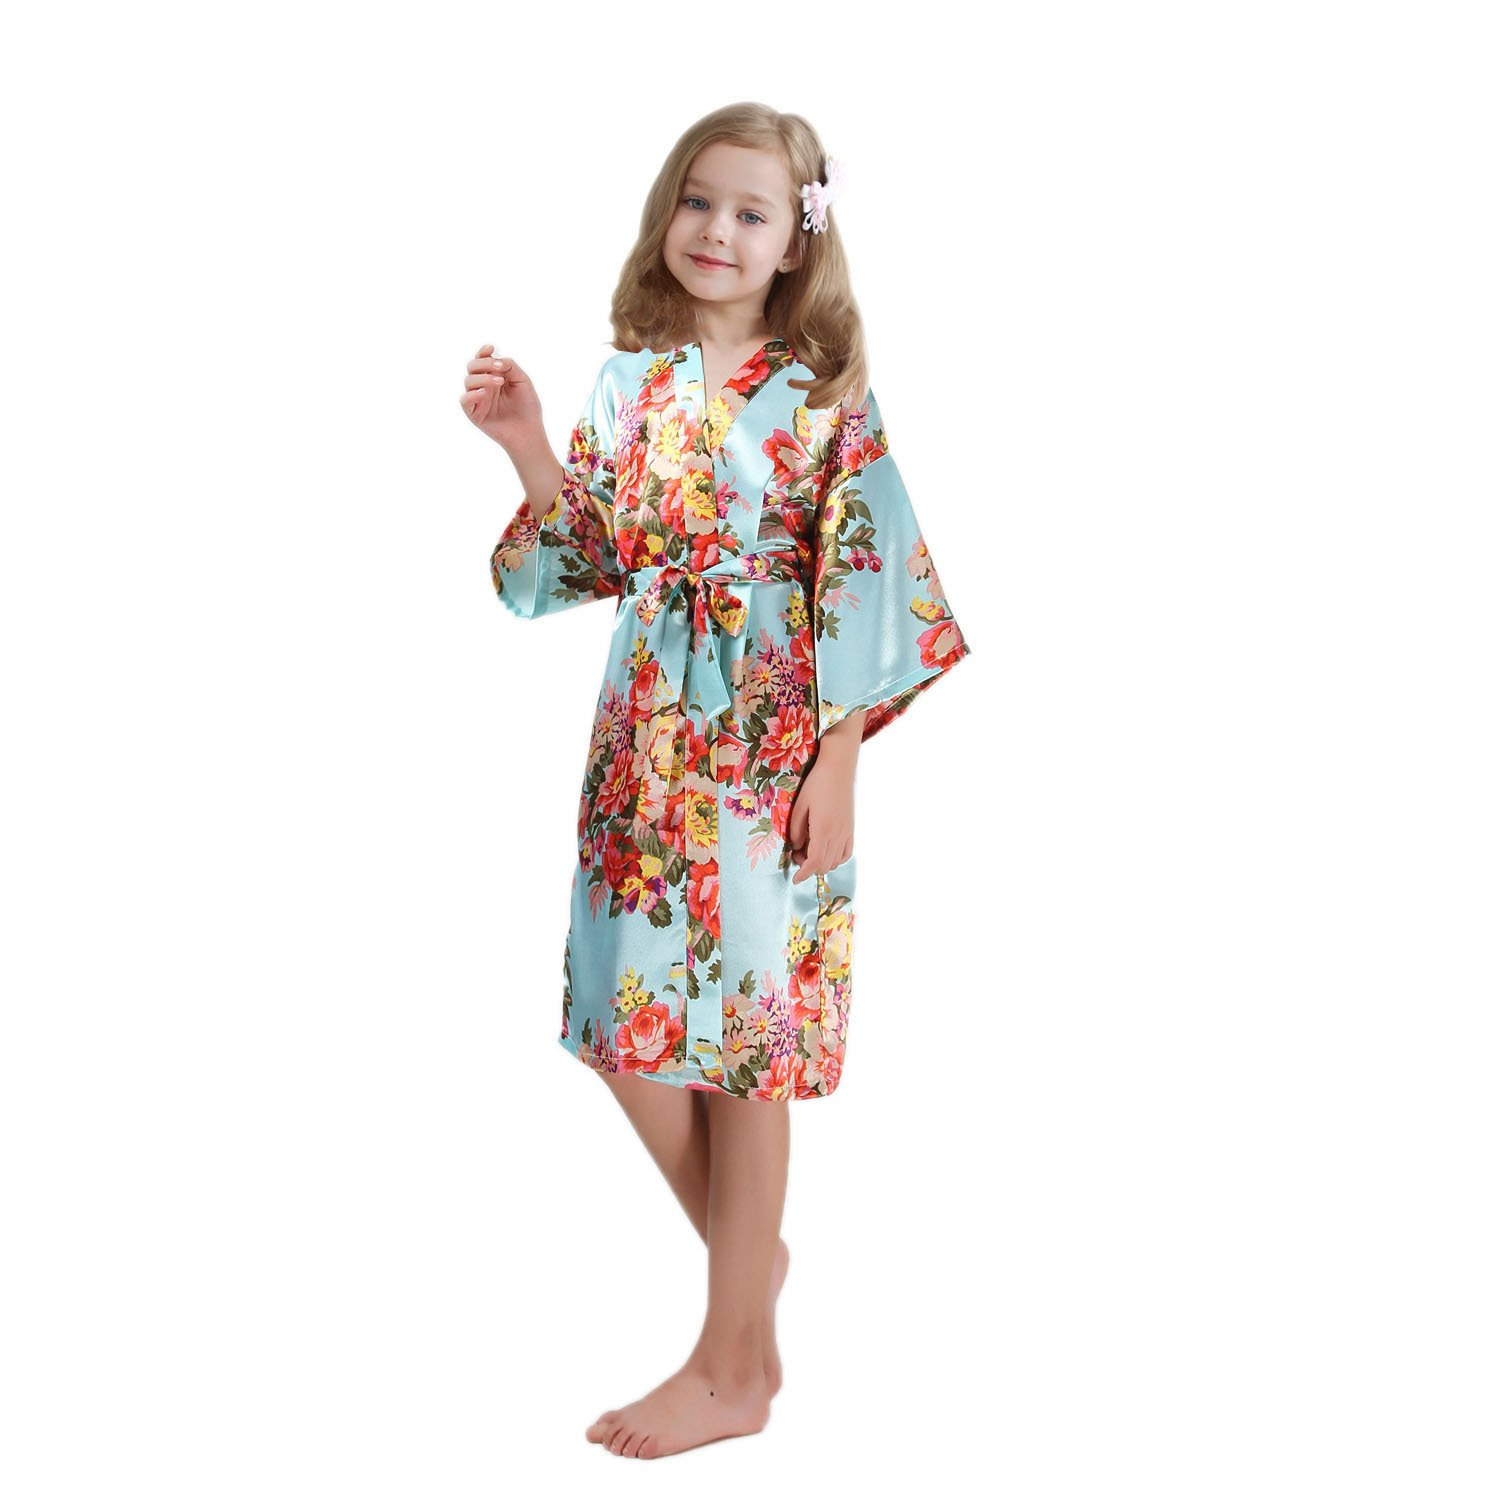 FCTREE Girls' Satin Kimono Robe Girls' Nightgown For Spa Party Wedding Birthday (10-11 Years, Light Blue)